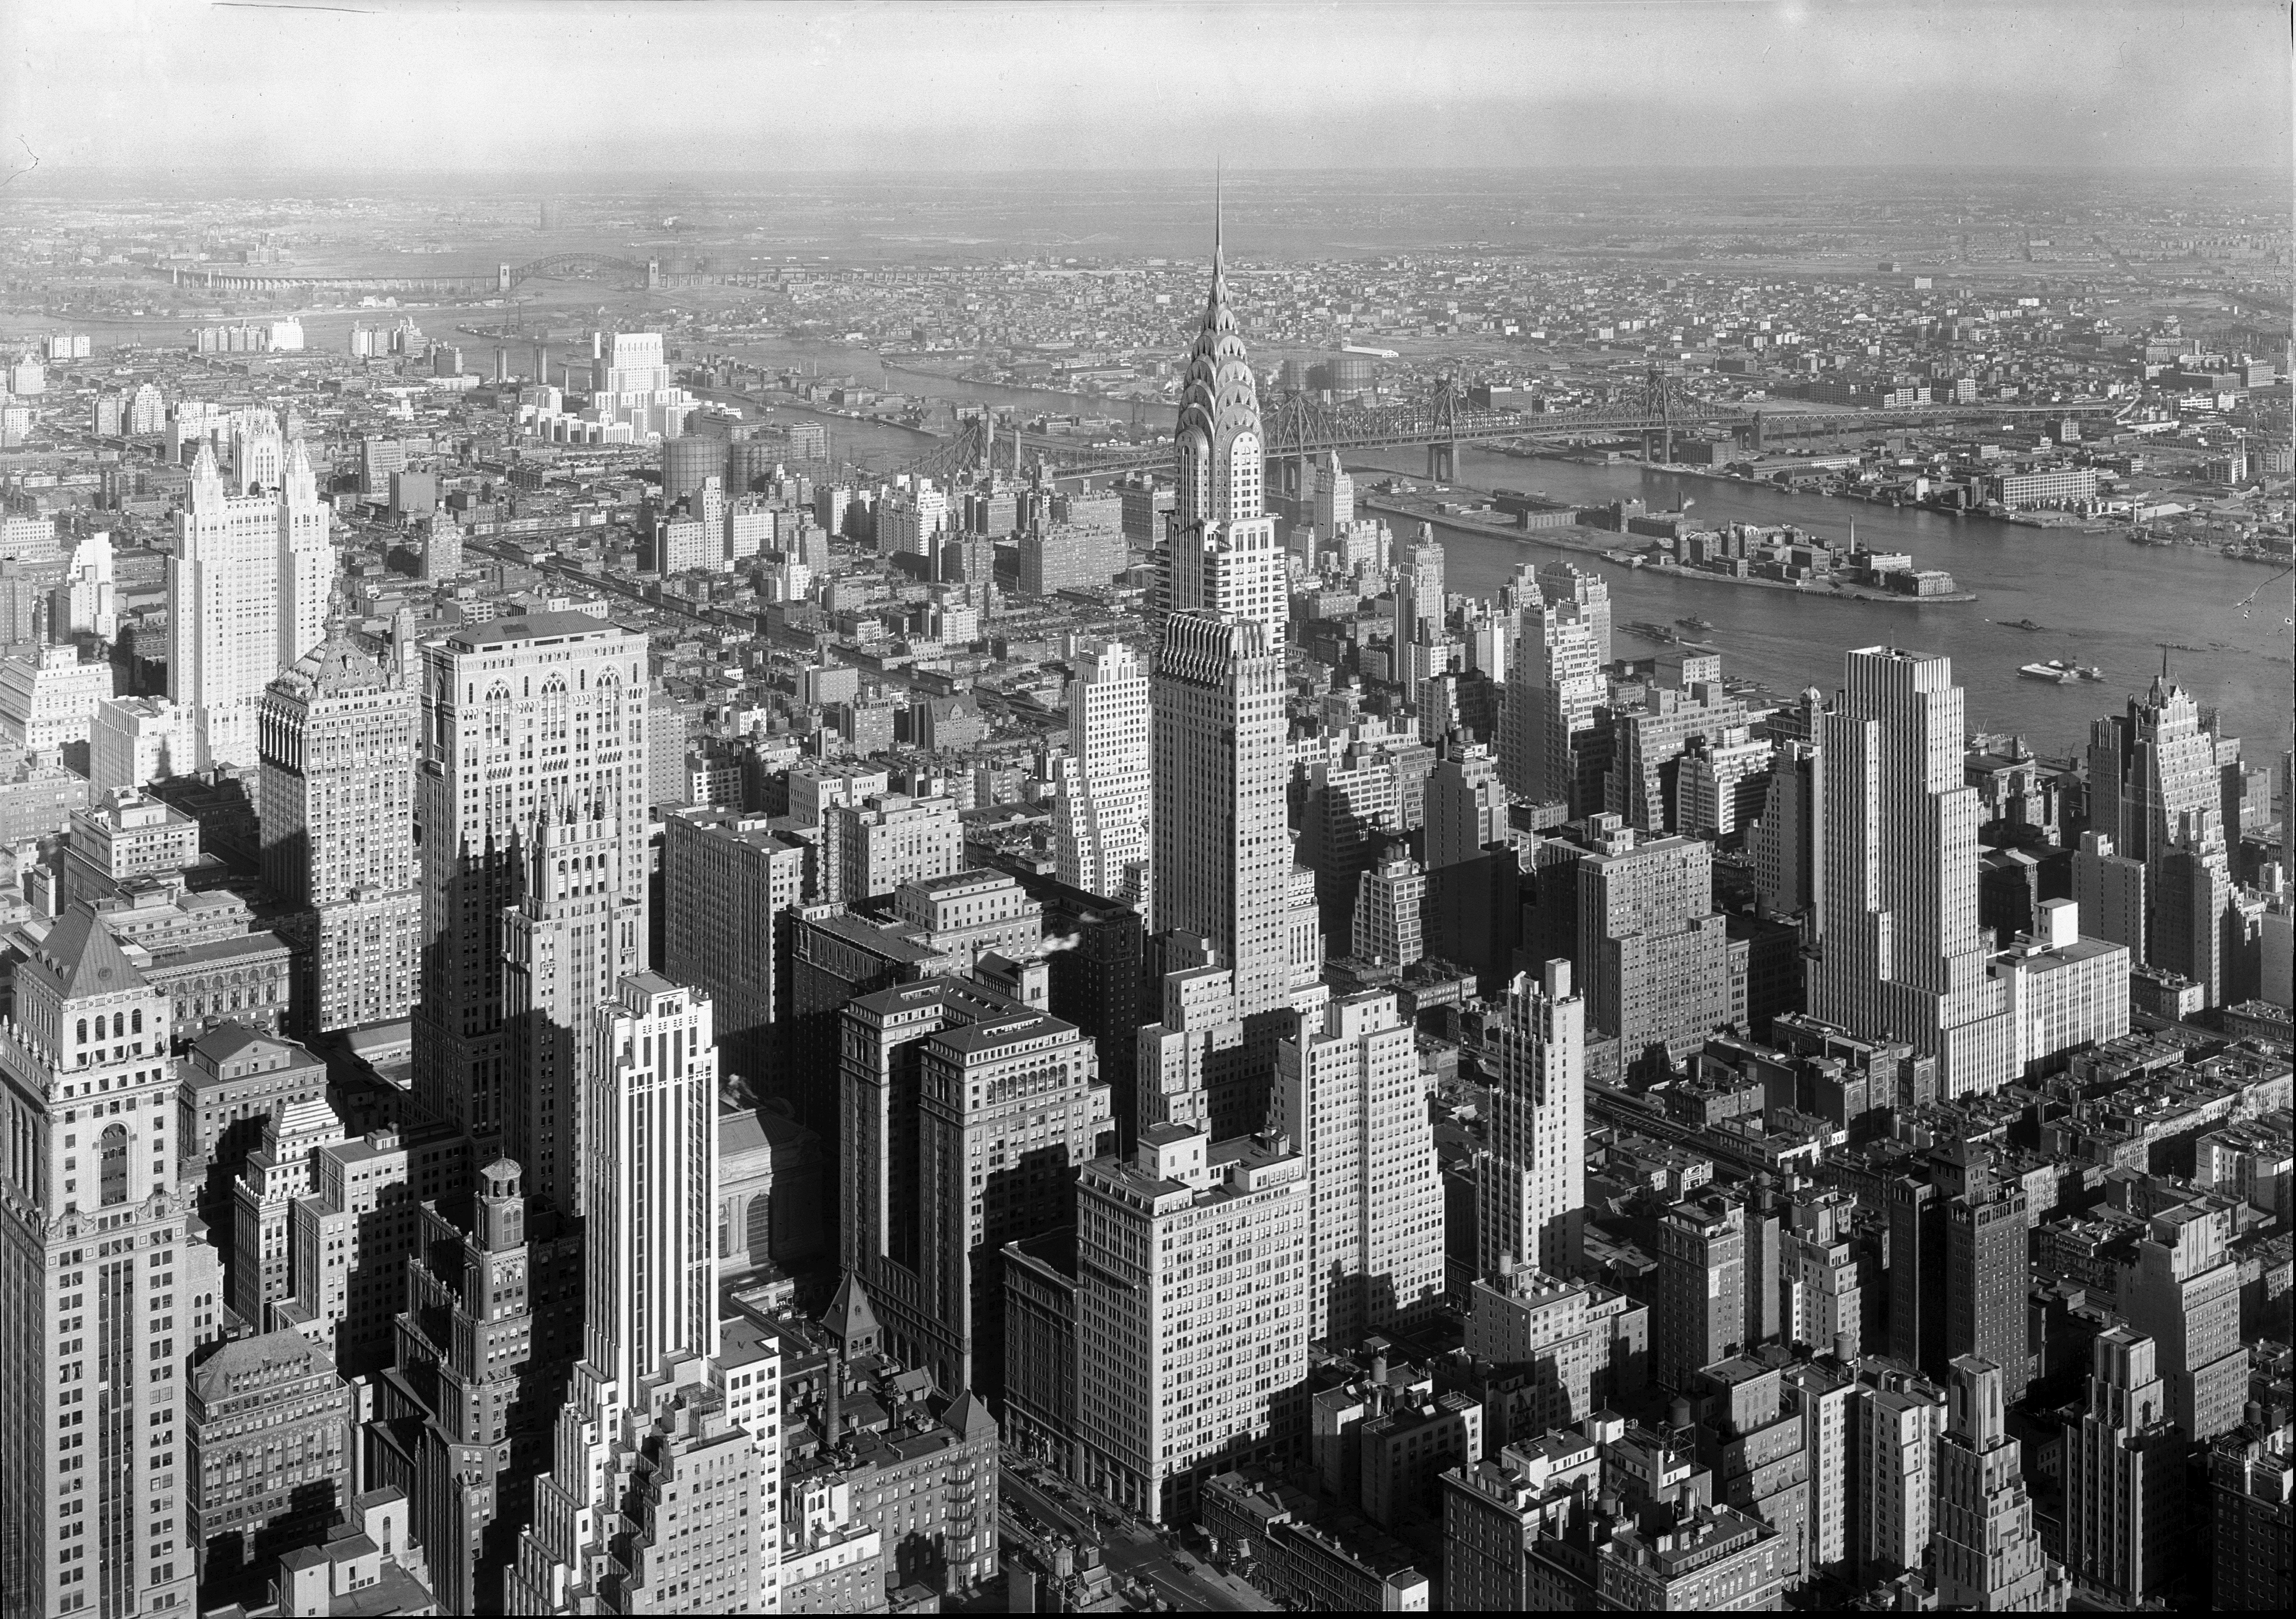 Description chrysler building midtown manhattan new york city 1932